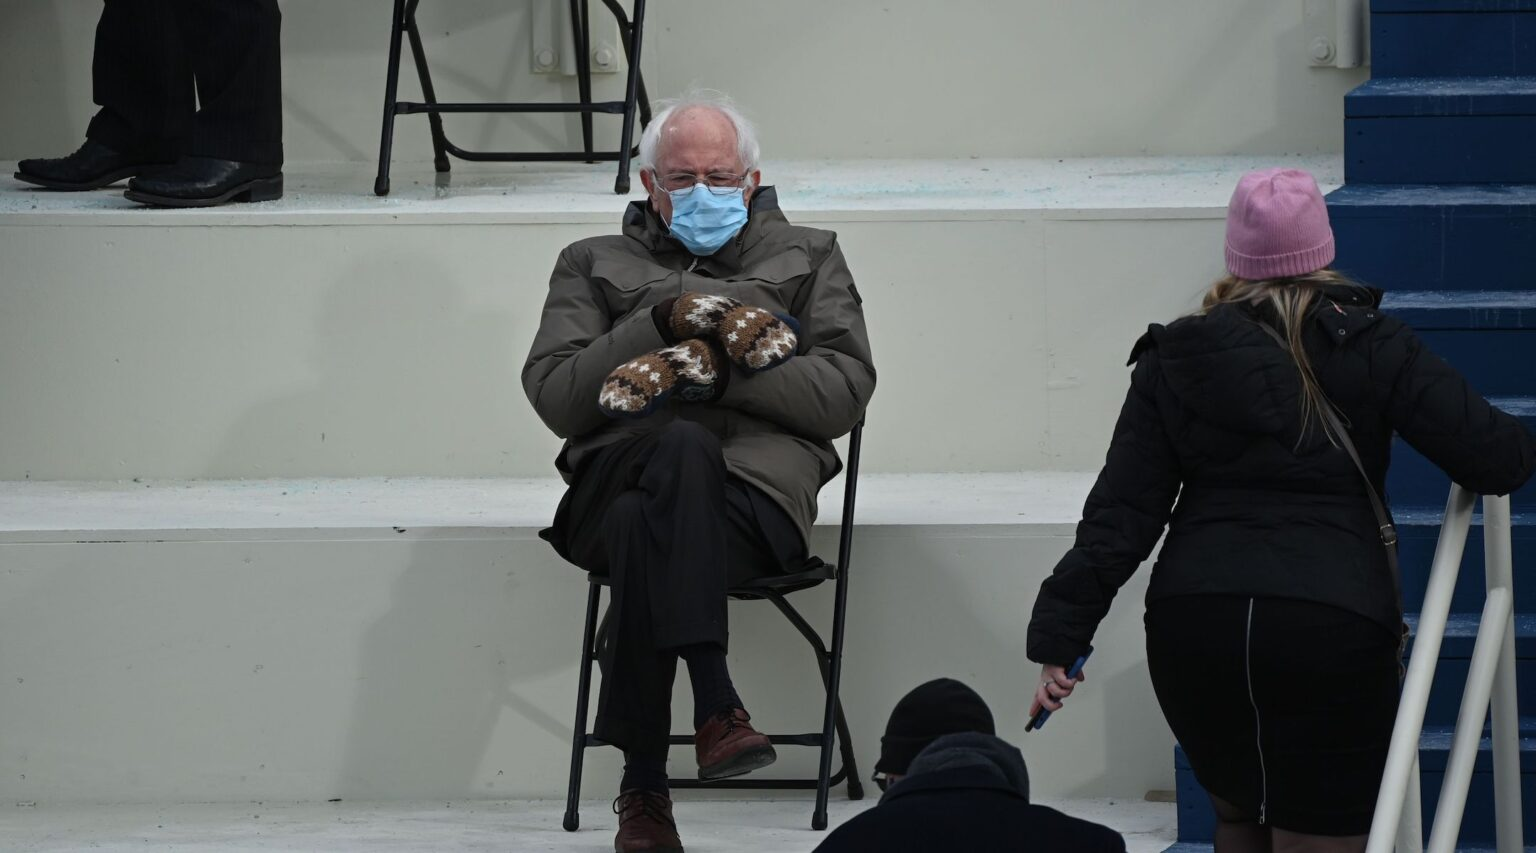 Bernie Sanders in his now iconic Inauguration Day pose and outfit, Jan. 20, 2021. (Photo/JTA-Brendan Smialowski-AFP via Getty Images)